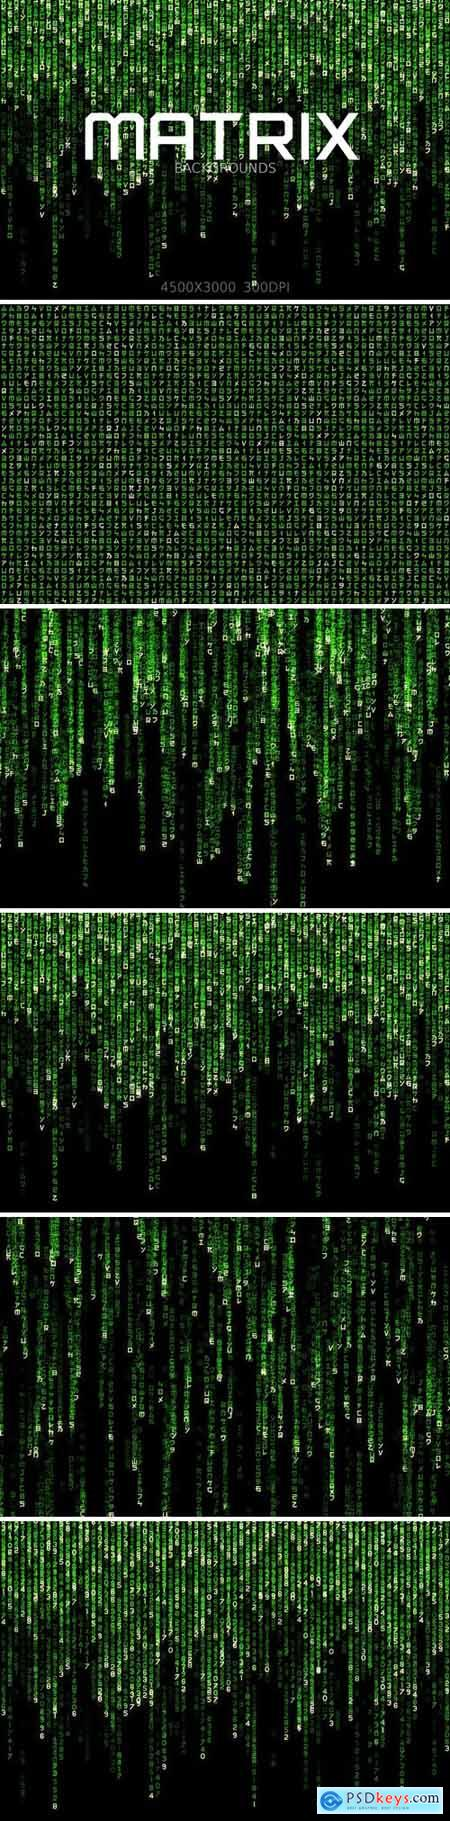 Matrix Backgrounds and Overlays